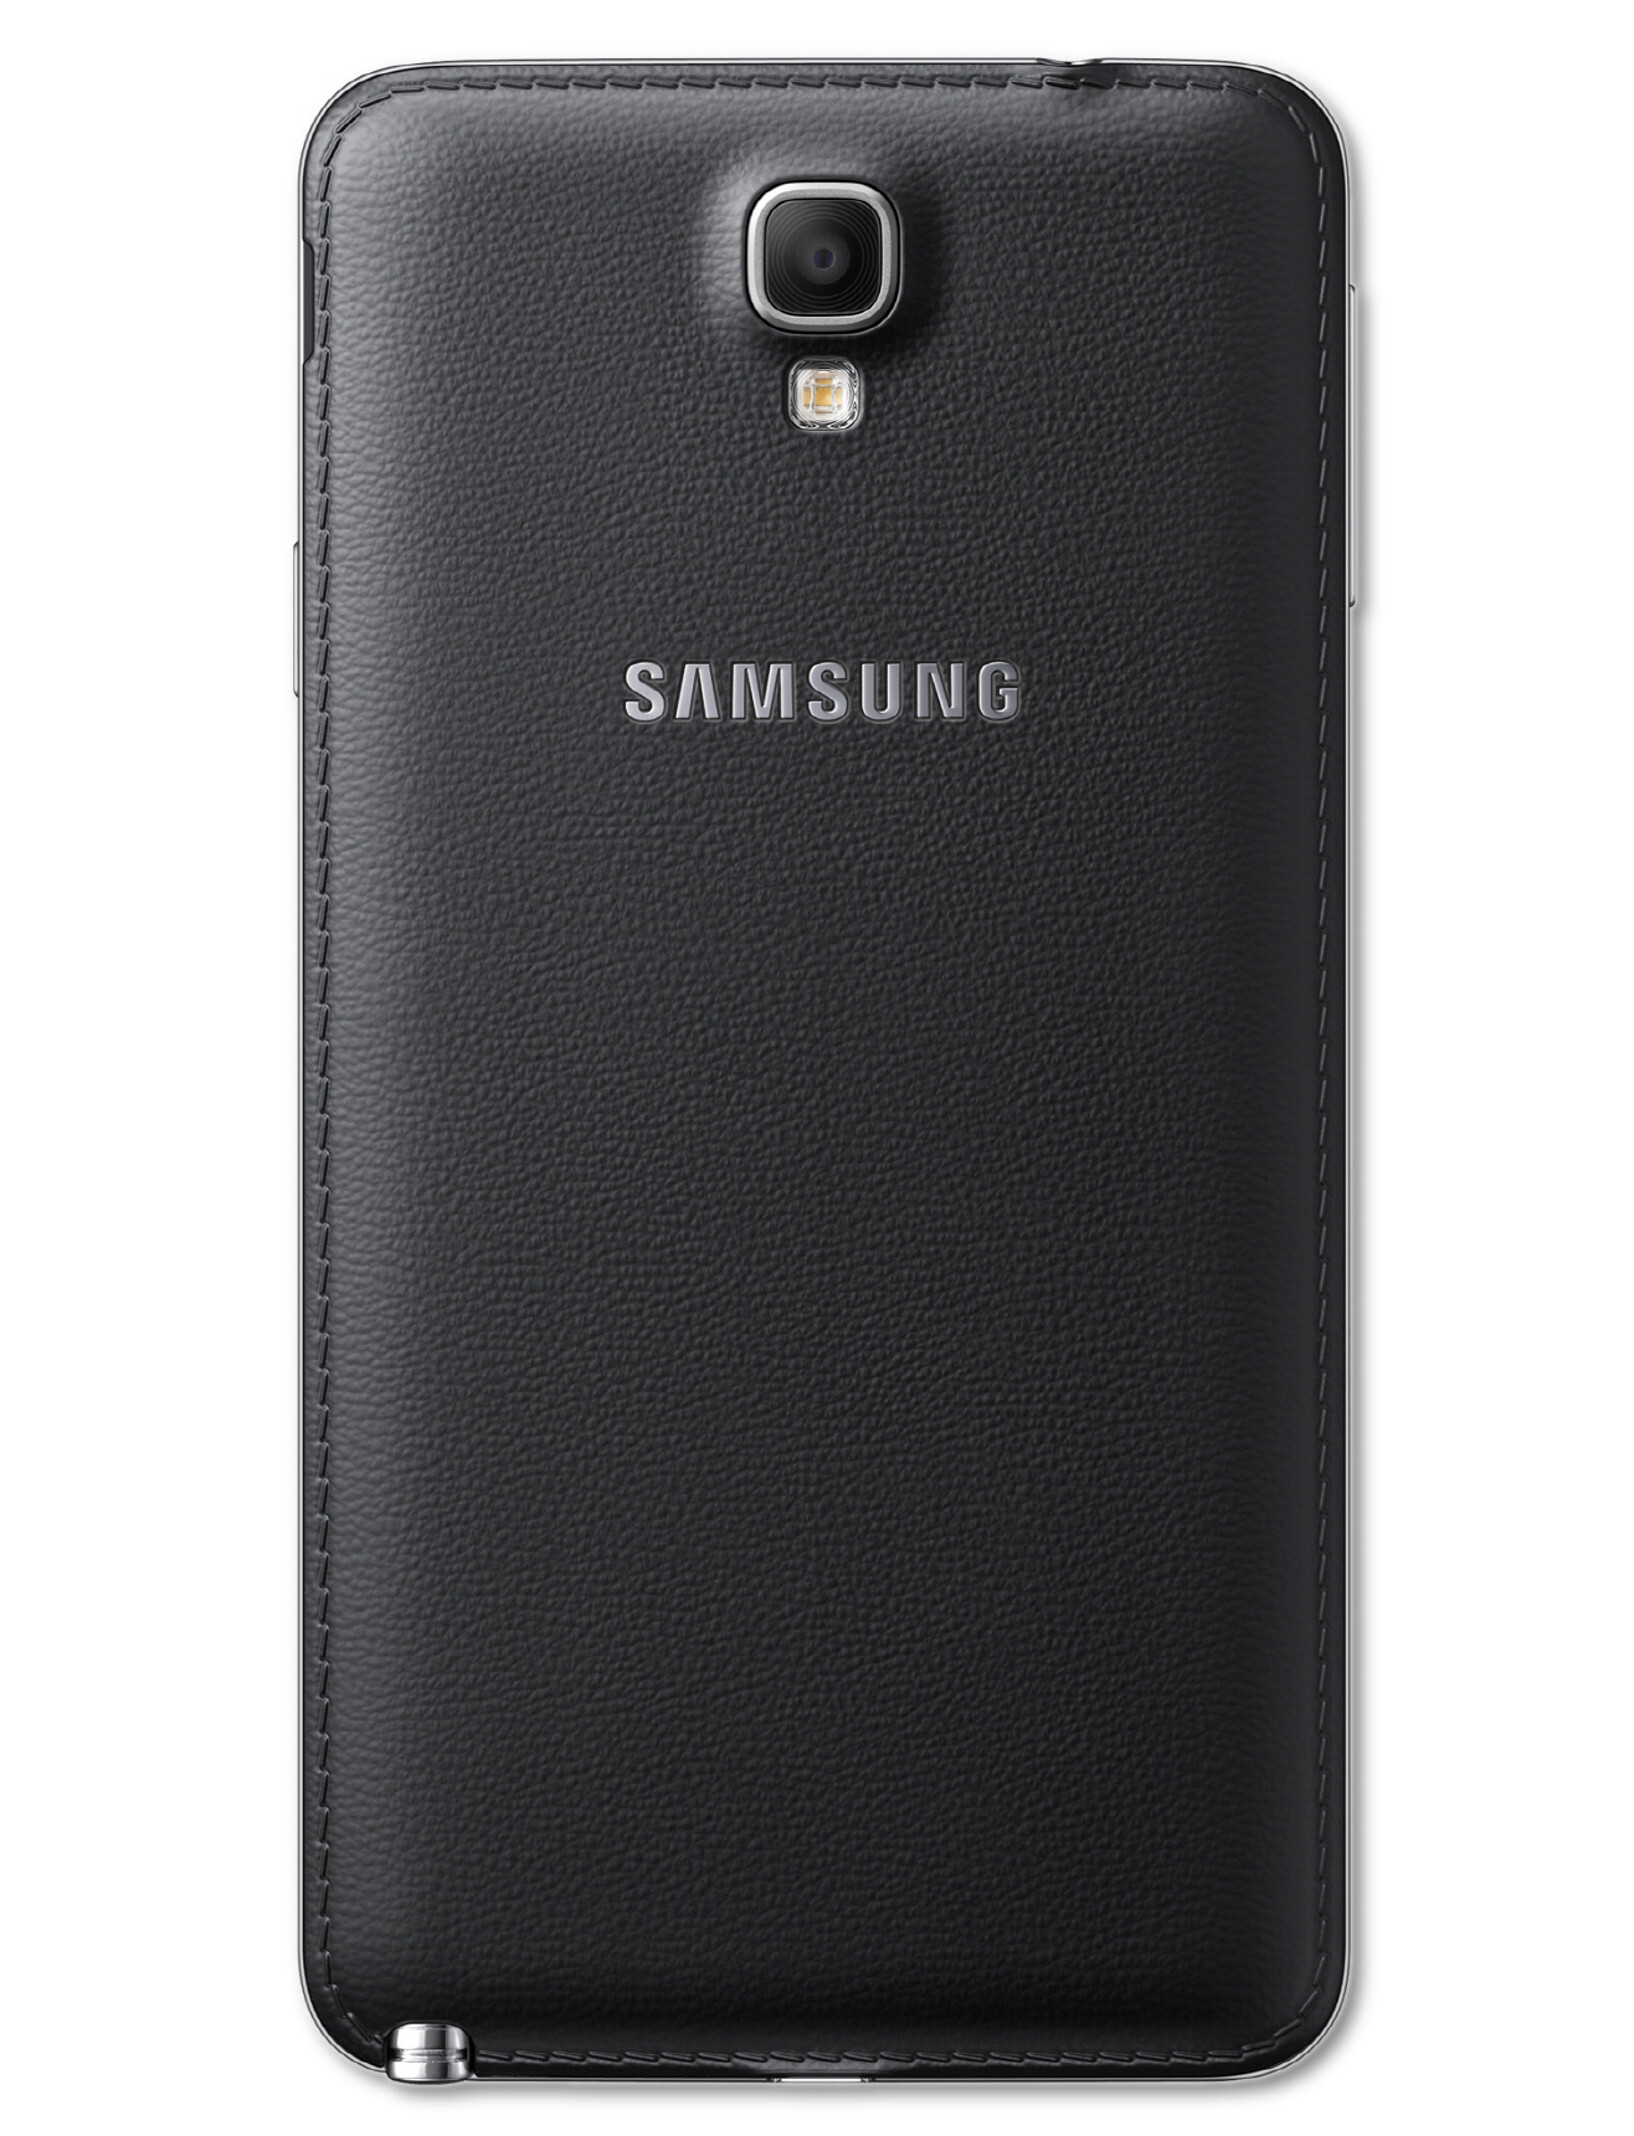 Samsung galaxy note 3 neo specs for Housse telephone samsung galaxy note 3